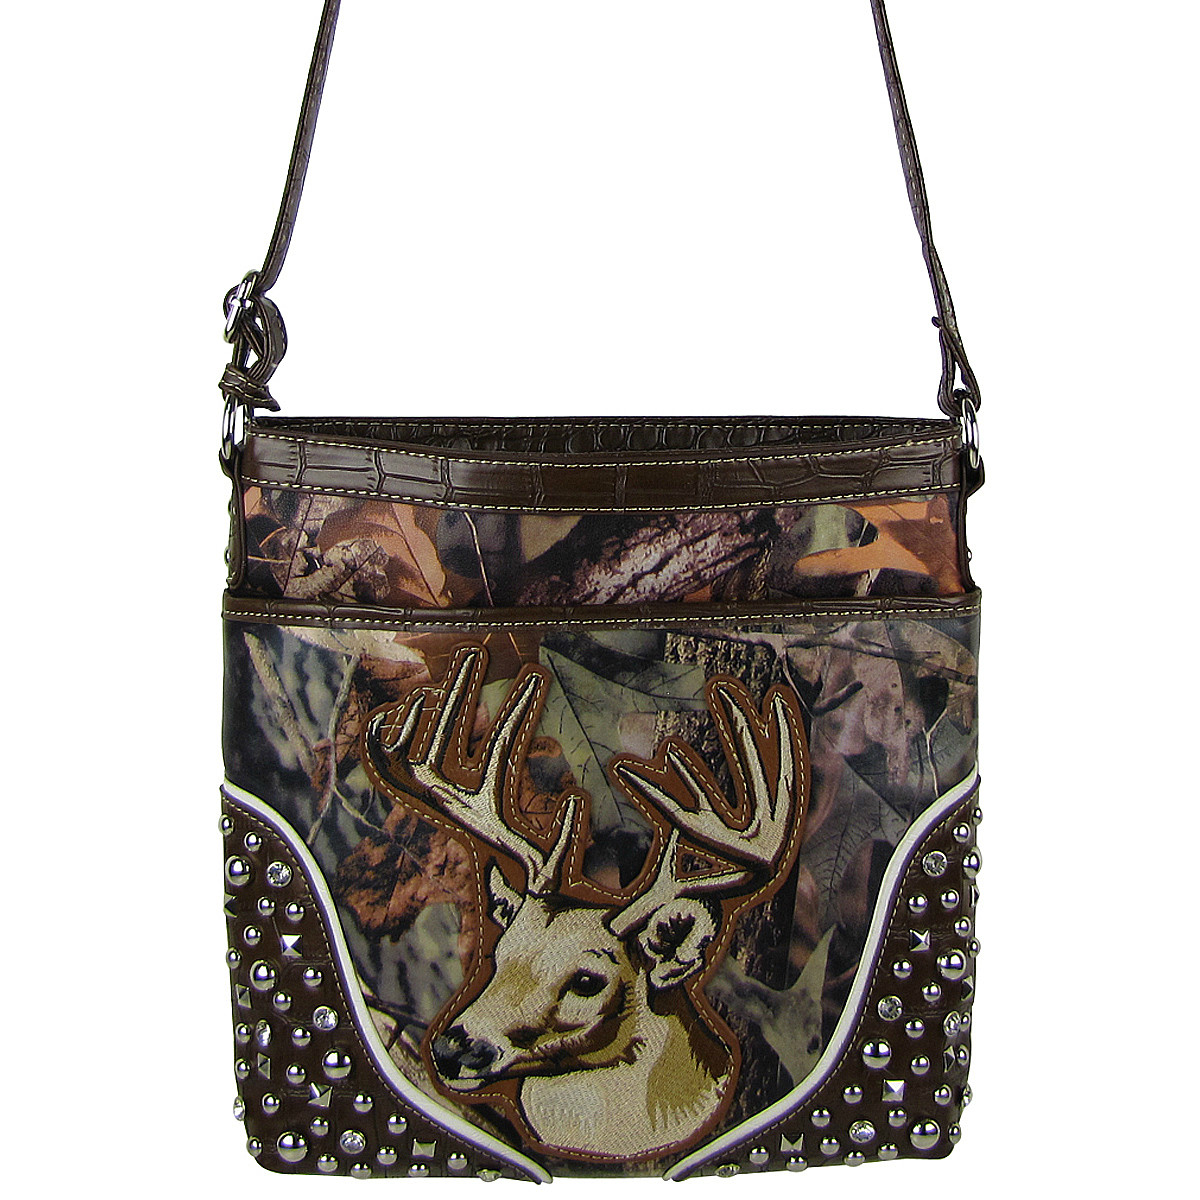 BROWN CAMO STUDDED RHINESTONE STITCHED DEER LOOK MESSENGER BAG MB1-HL12960BRN